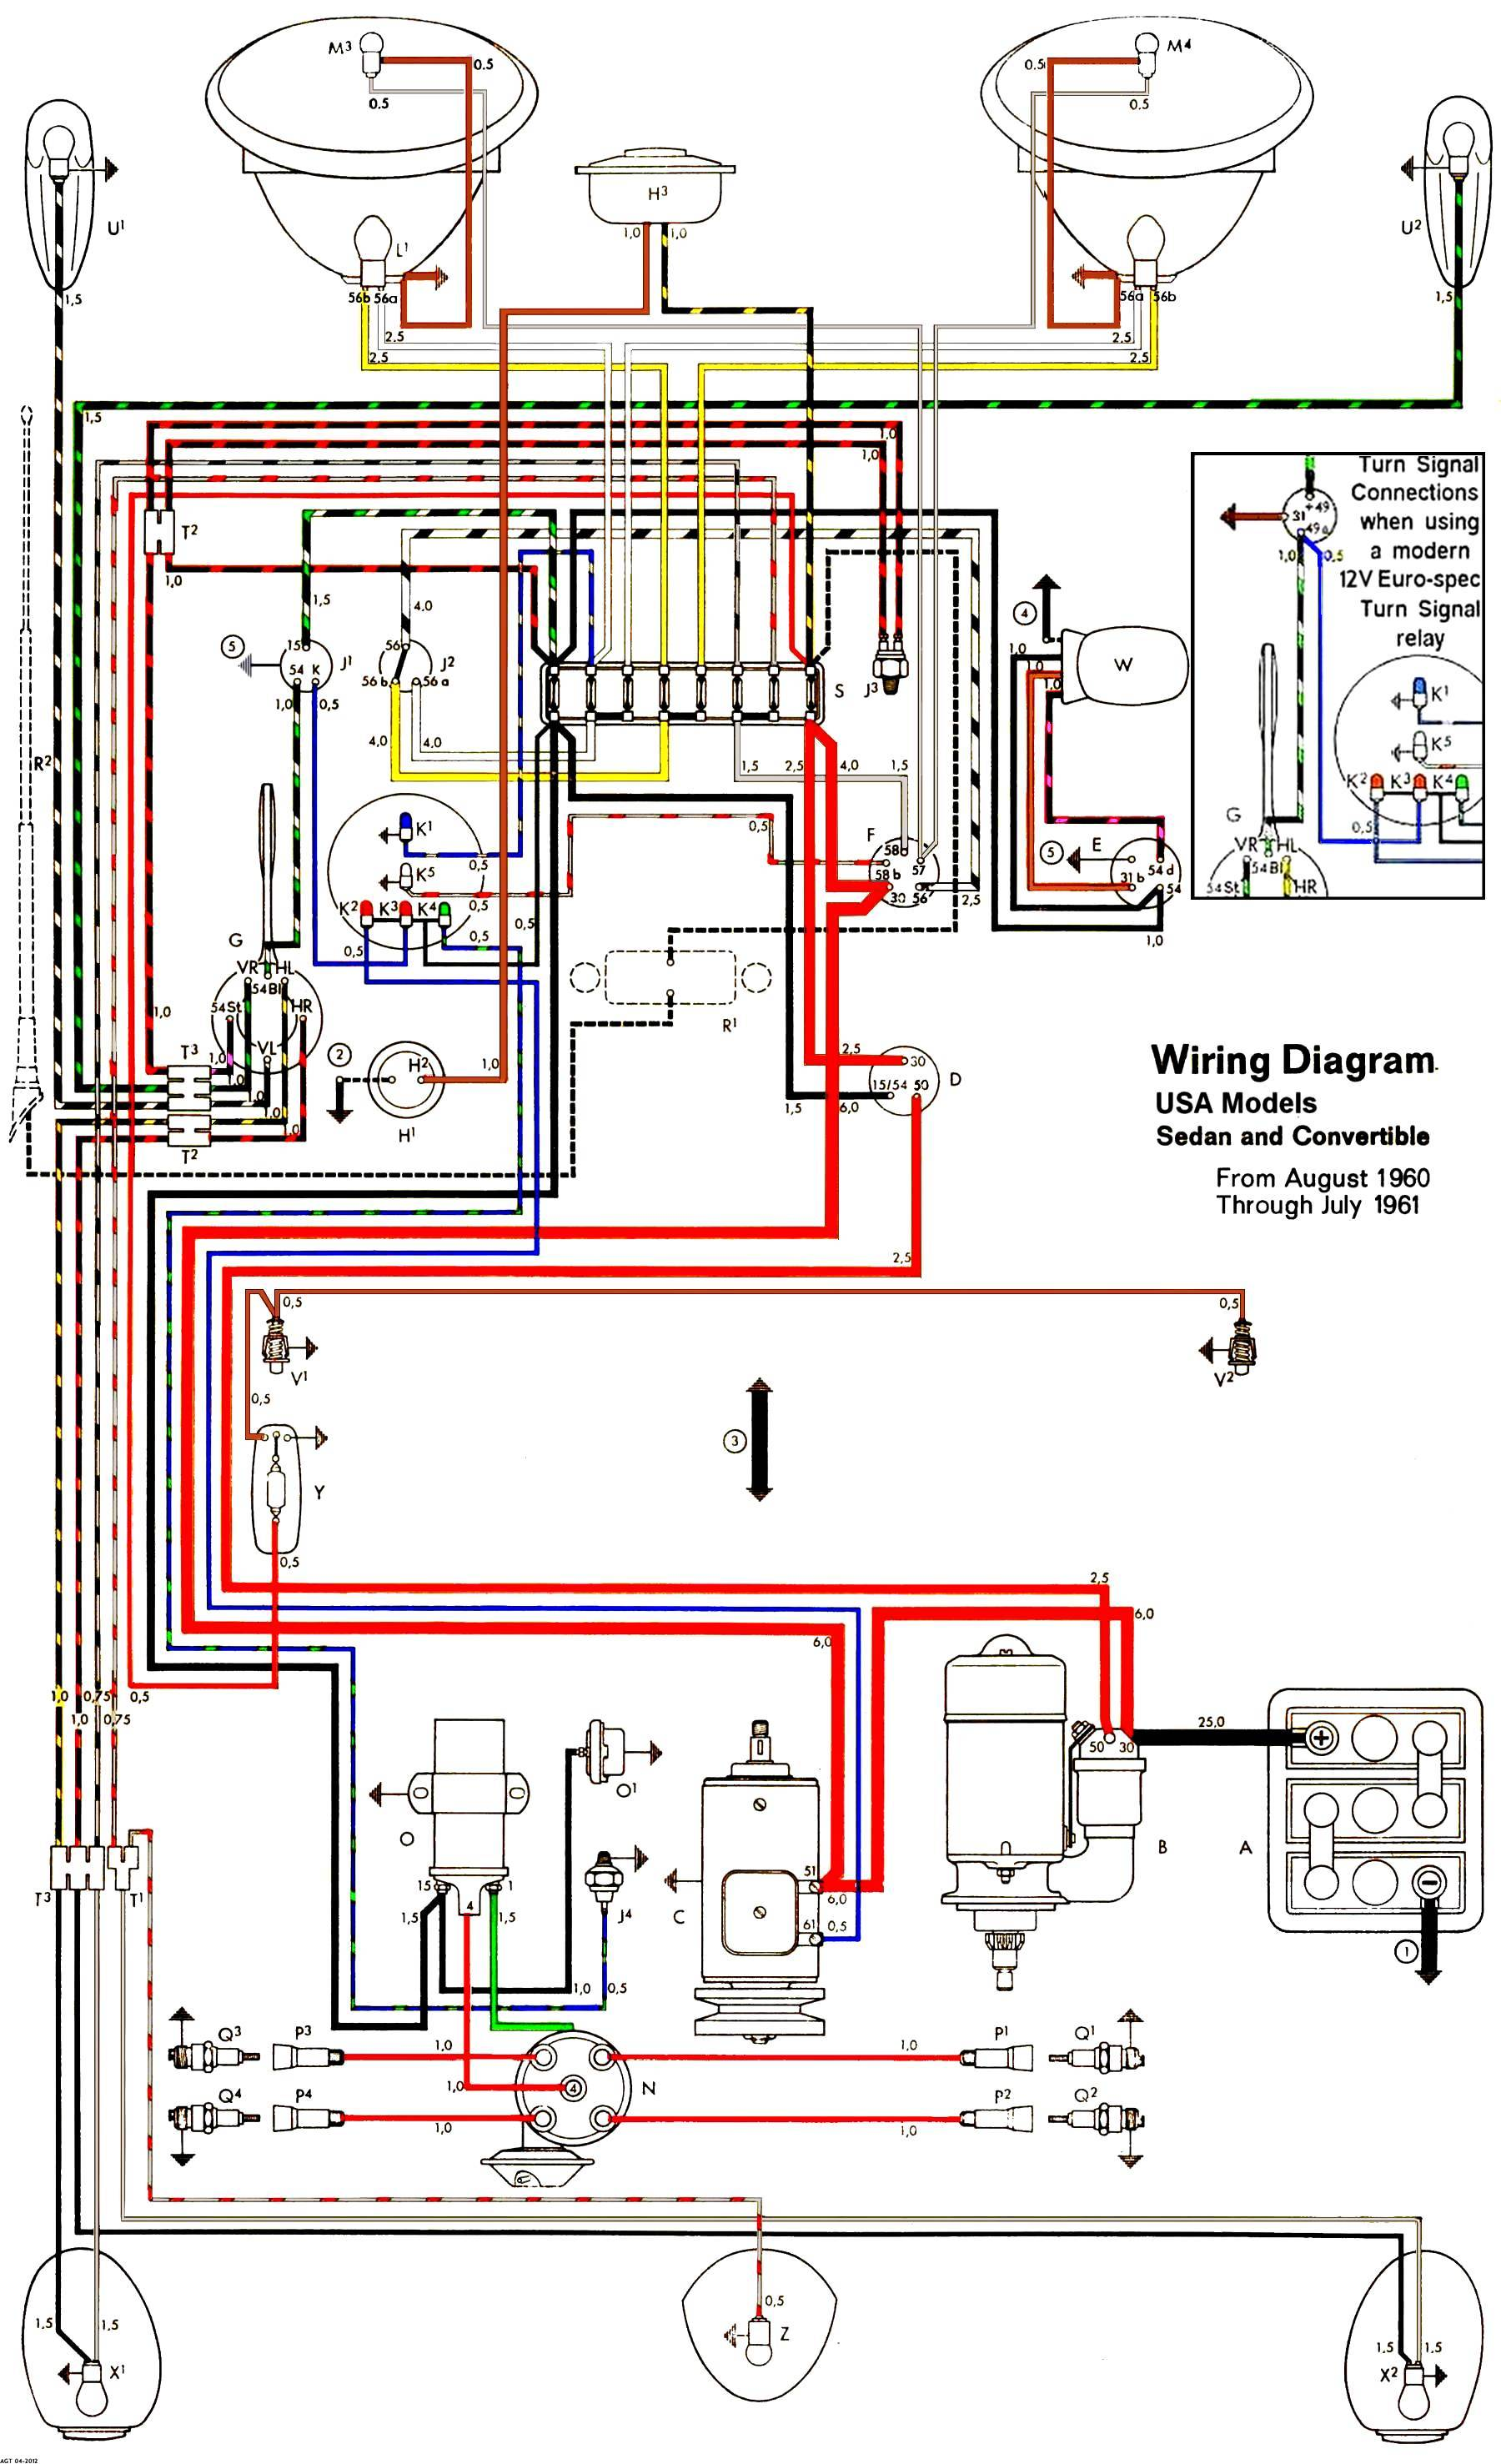 t1 circuit wiring diagram wiring diagram sonoff t1 wiring diagram t1 circuit wiring diagram [ 1800 x 2955 Pixel ]